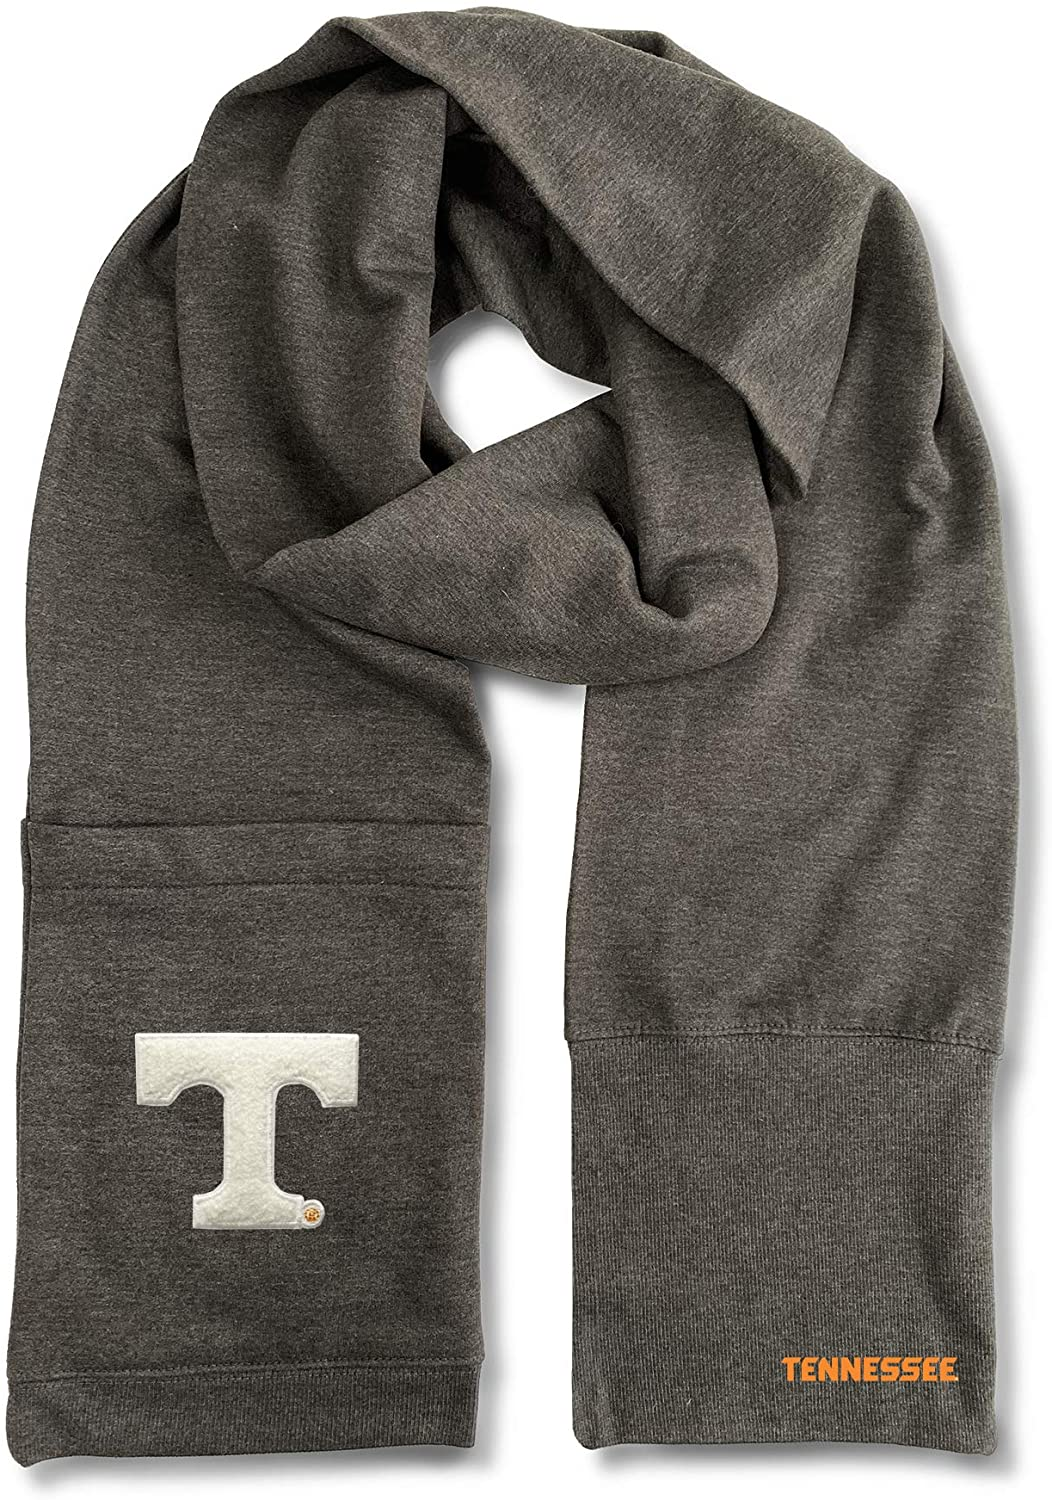 Littlearth NCAA Tennessee Volunteers Jimmy Bean 4-in-1 Scarf, Team Color, Length 82 x Width 8